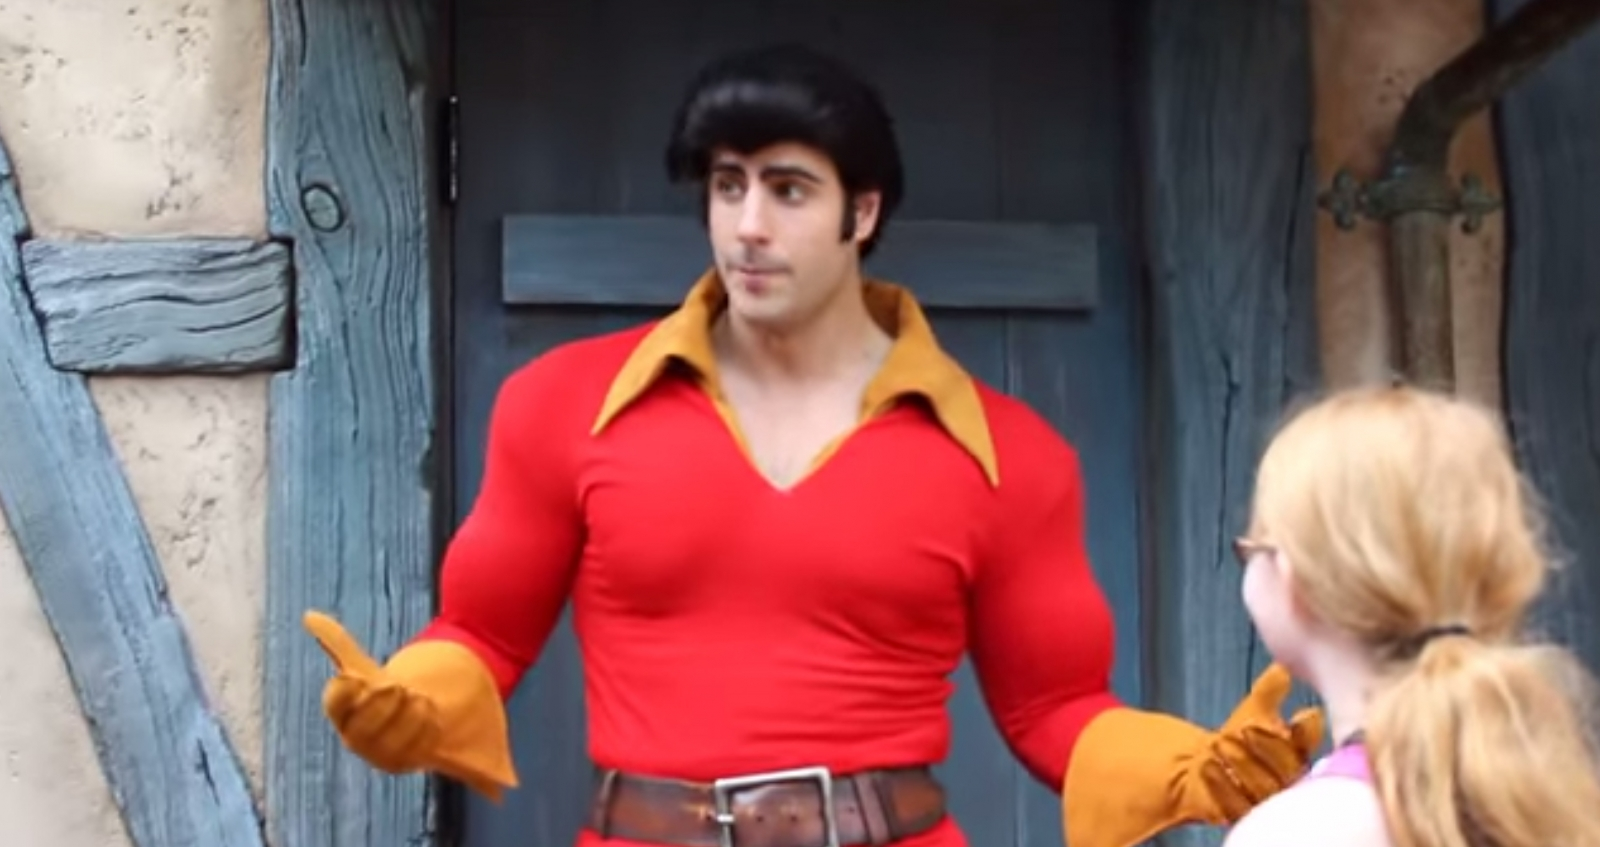 Gaston, a Disney cast member who has gained international popularity for his portrayal of a villain